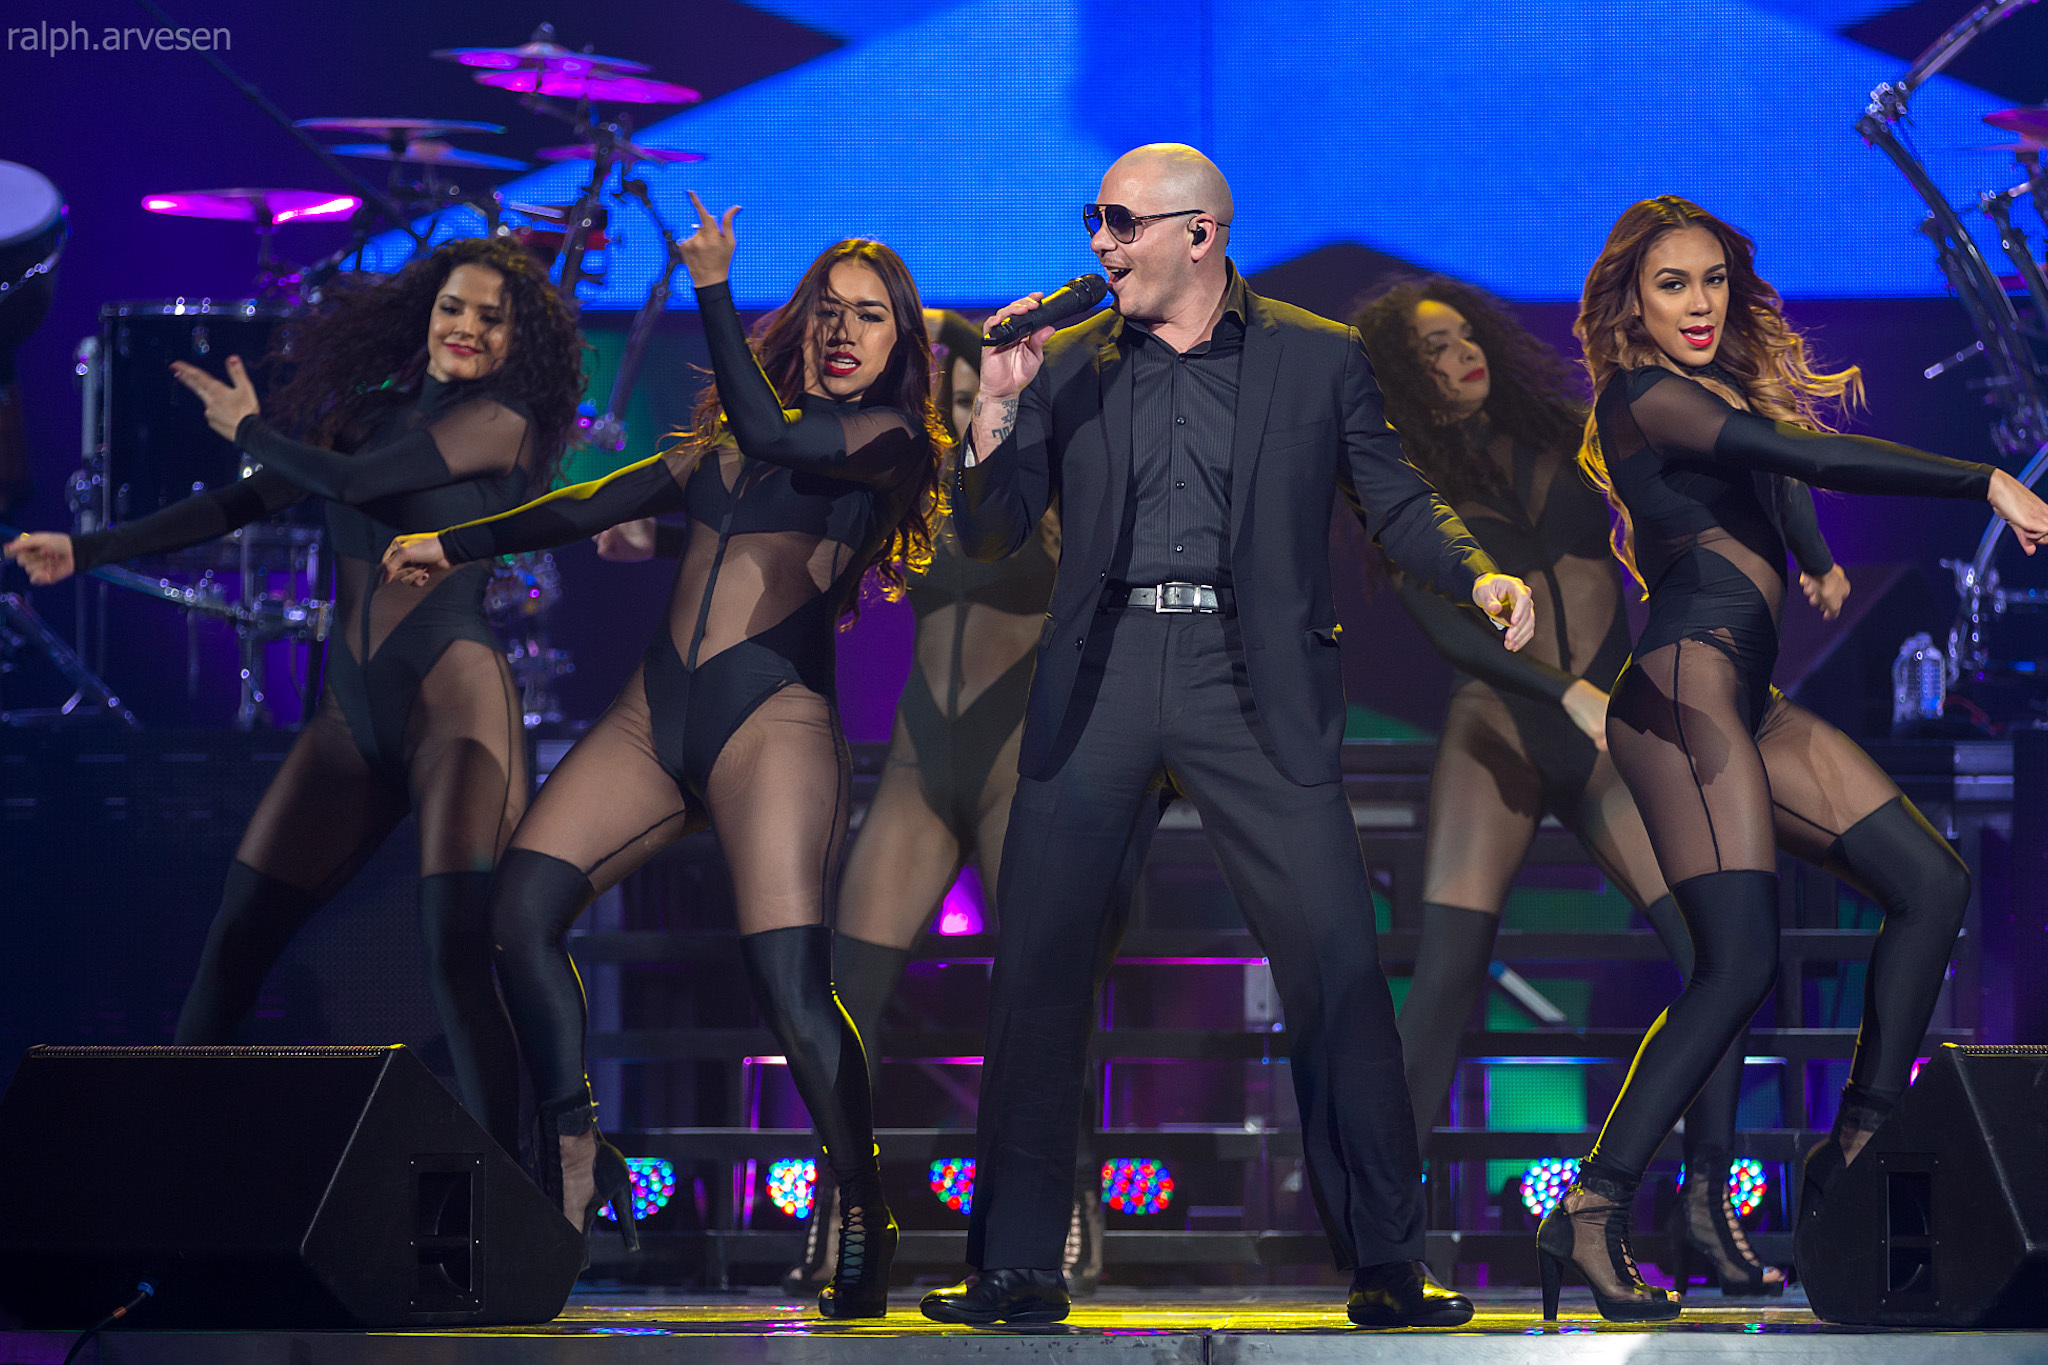 Catch Pitbull at Philly's Fourth of July concert on the Parkway